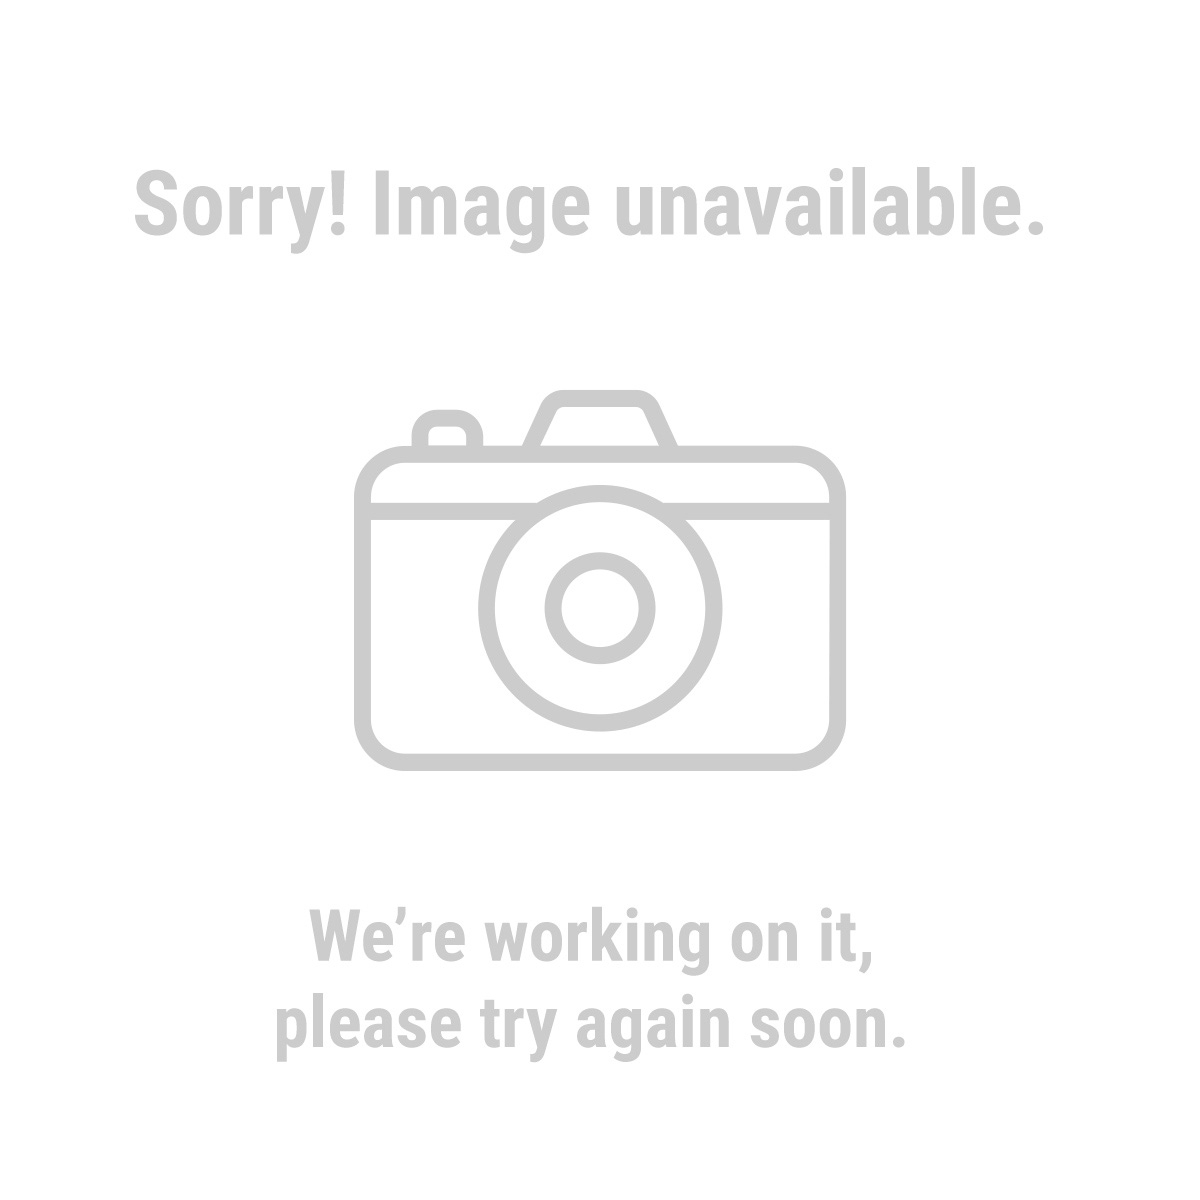 Haul-Master® 61524 1 in. x 15 ft. Ratcheting Tie Downs 4 Pc